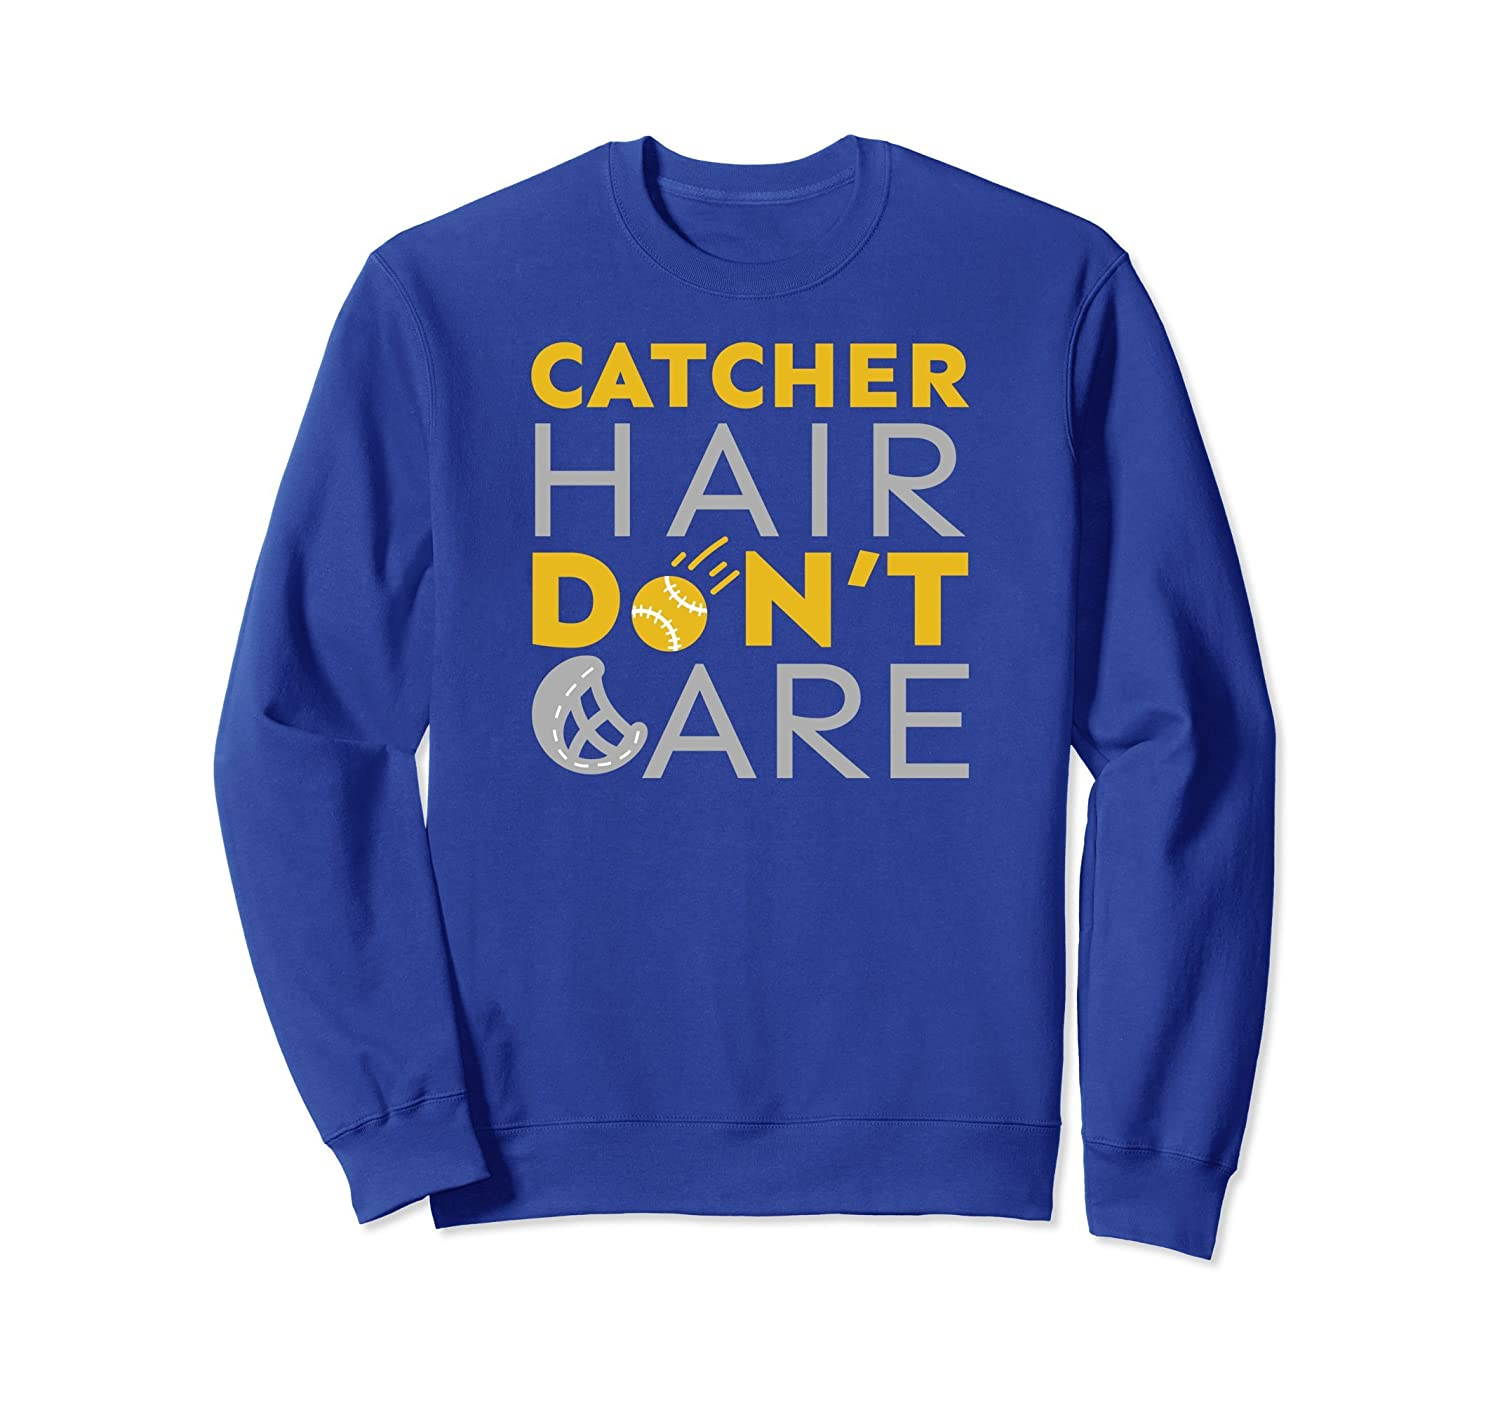 Catcher Hair Don't Care Girls Softball Fastpitch Sweatshirt-mt